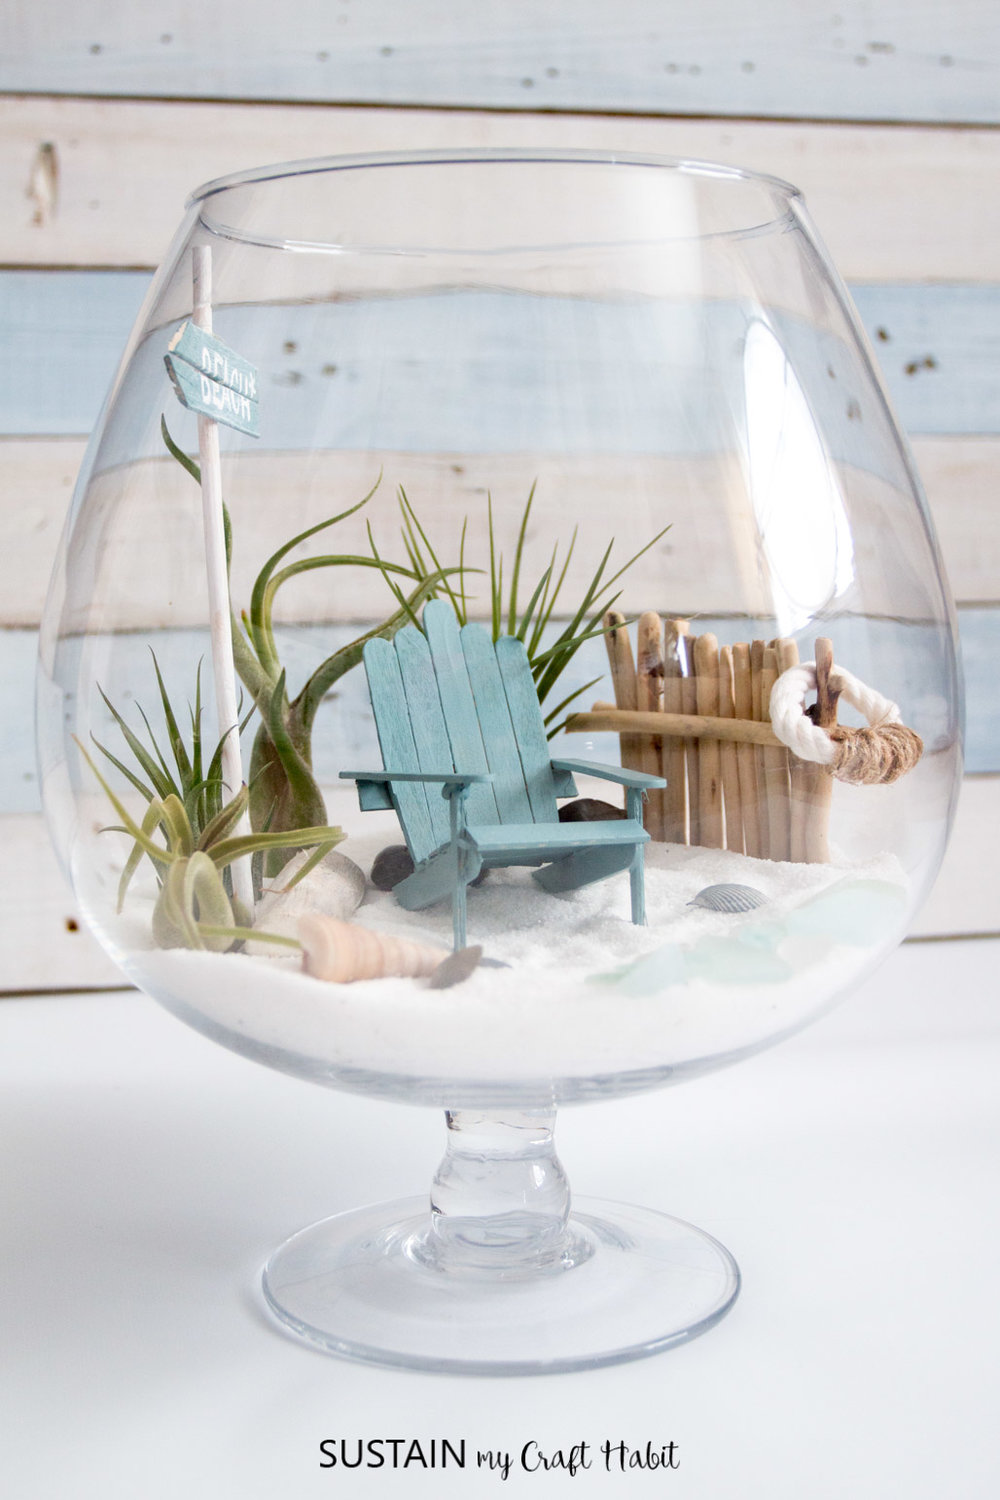 DIY air plant mini garden. What a fun way to display air plants - send them to the beach! Adorable coastal fairy garden idea.